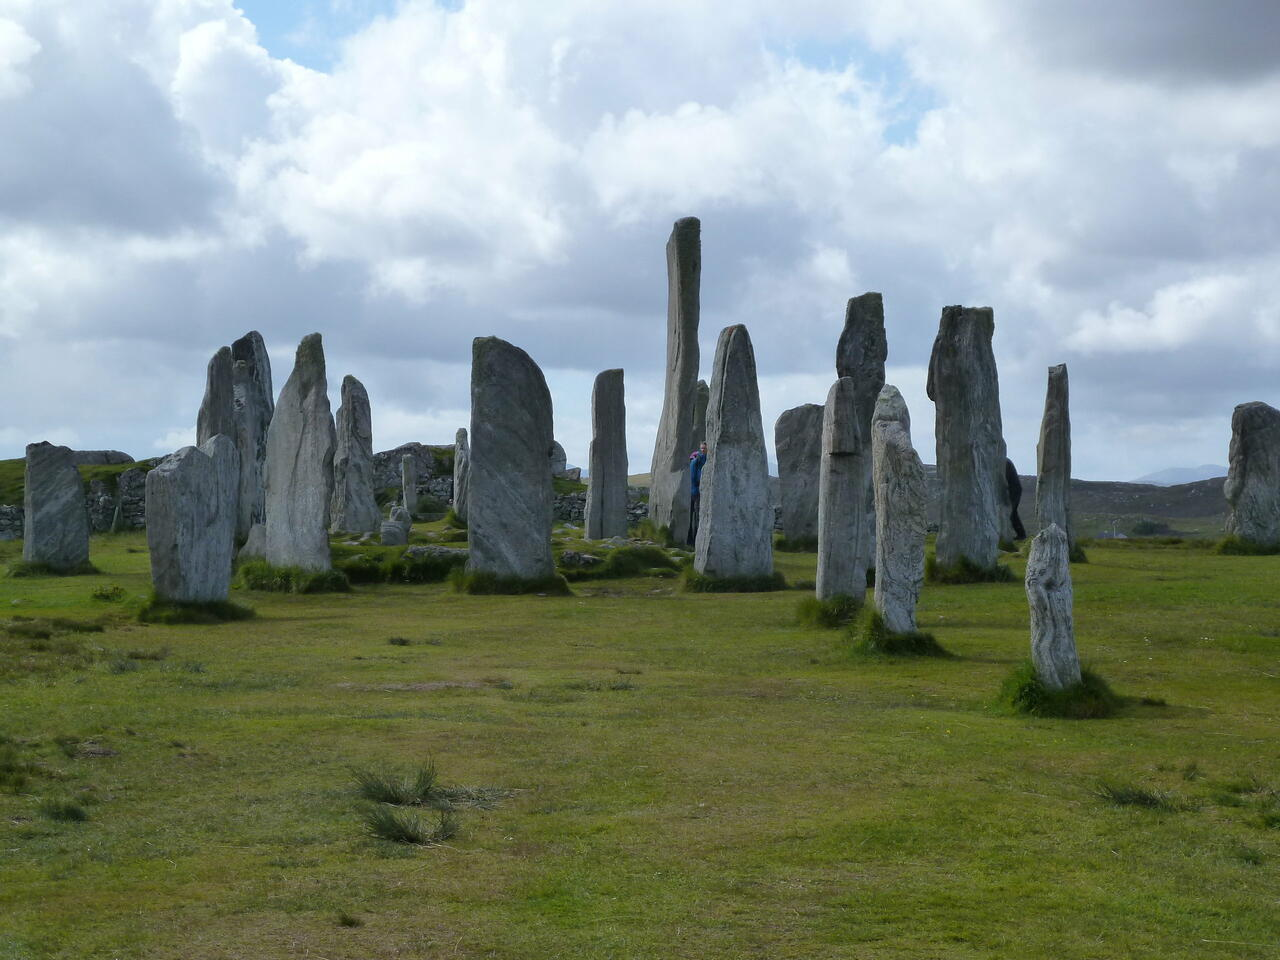 Callanish; (c) Stephan Matthiesen 2011